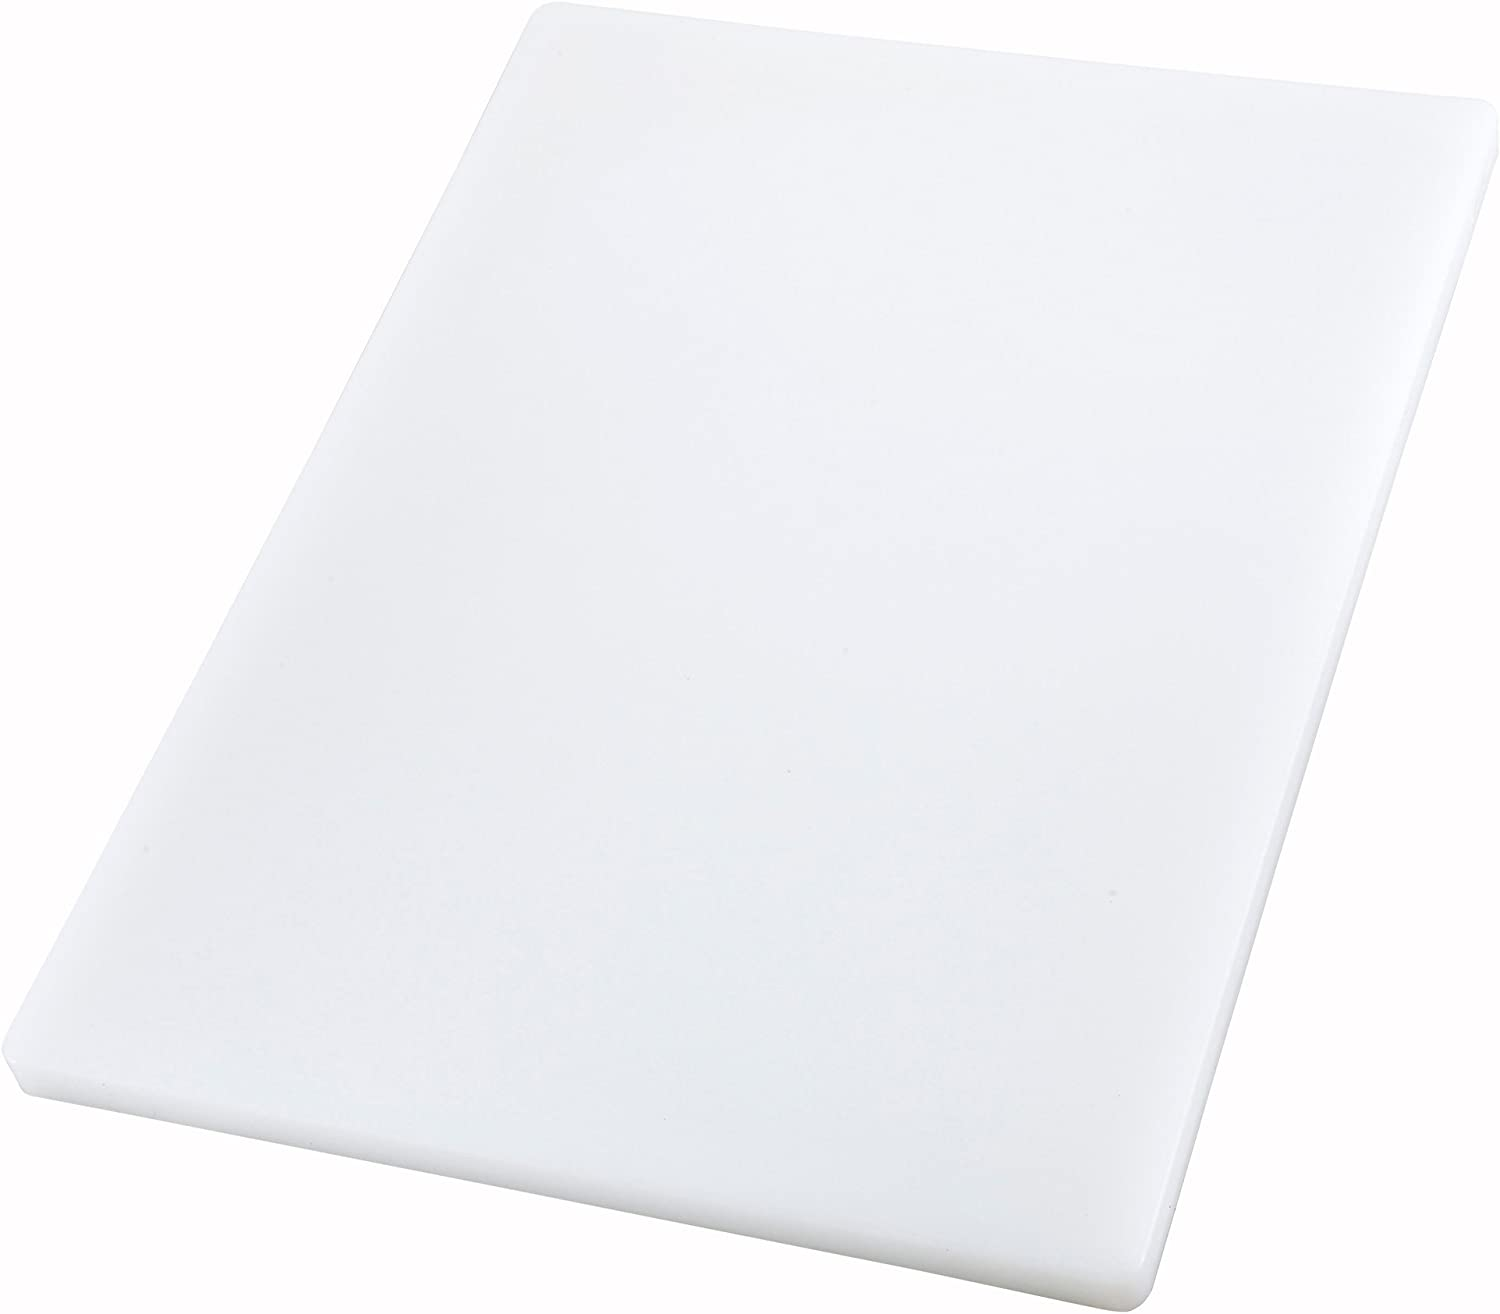 Winco Cutting Board, 15 by 20 by 1-Inch, White